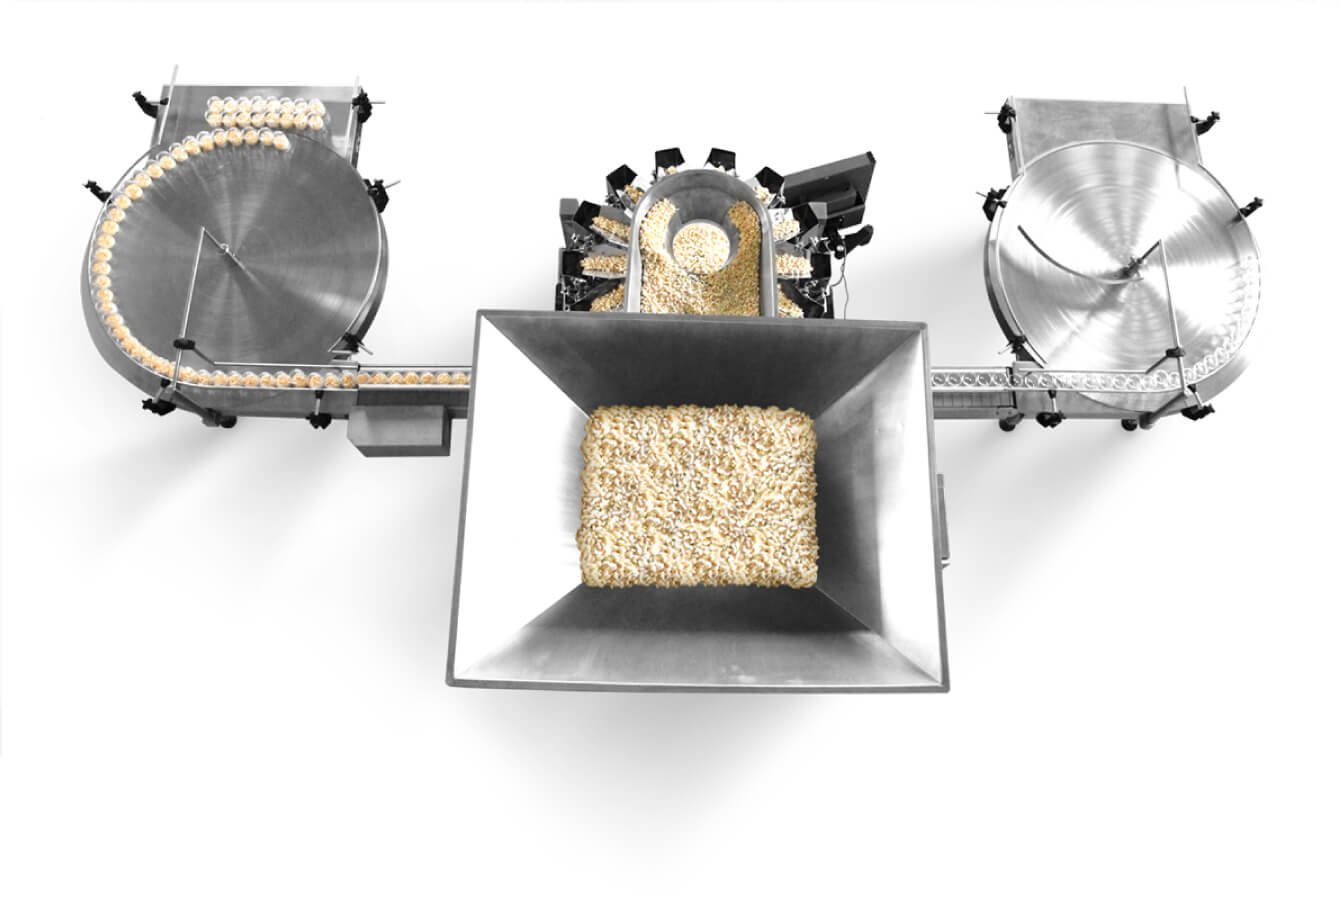 Powder cheese filling and weighing automated machinery